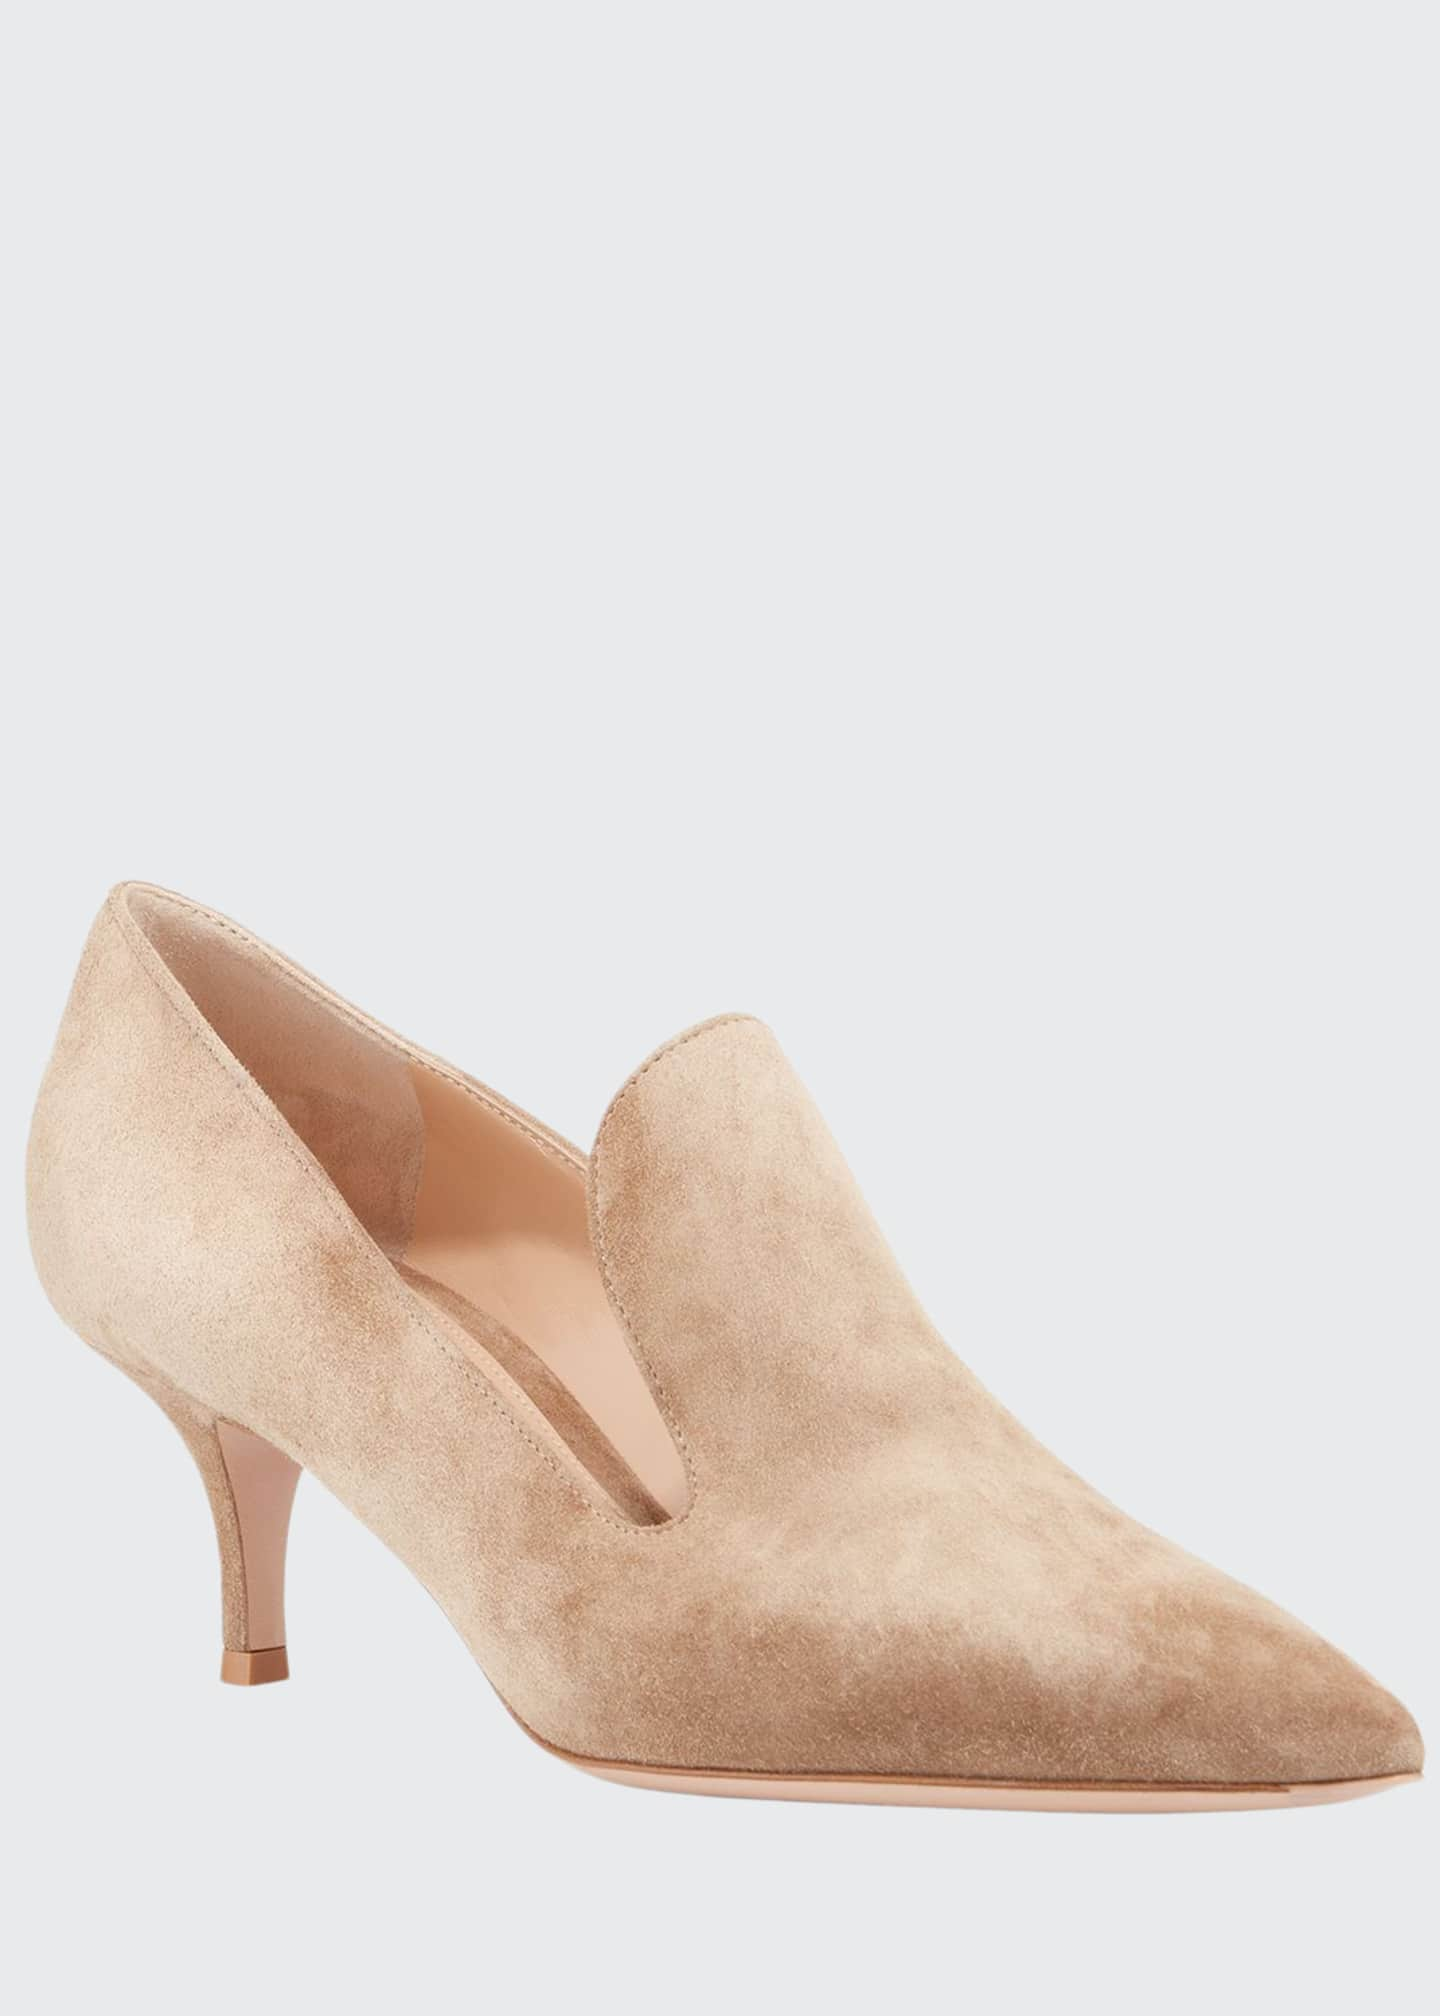 Gianvito Rossi Suede Pointed Heeled Loafers